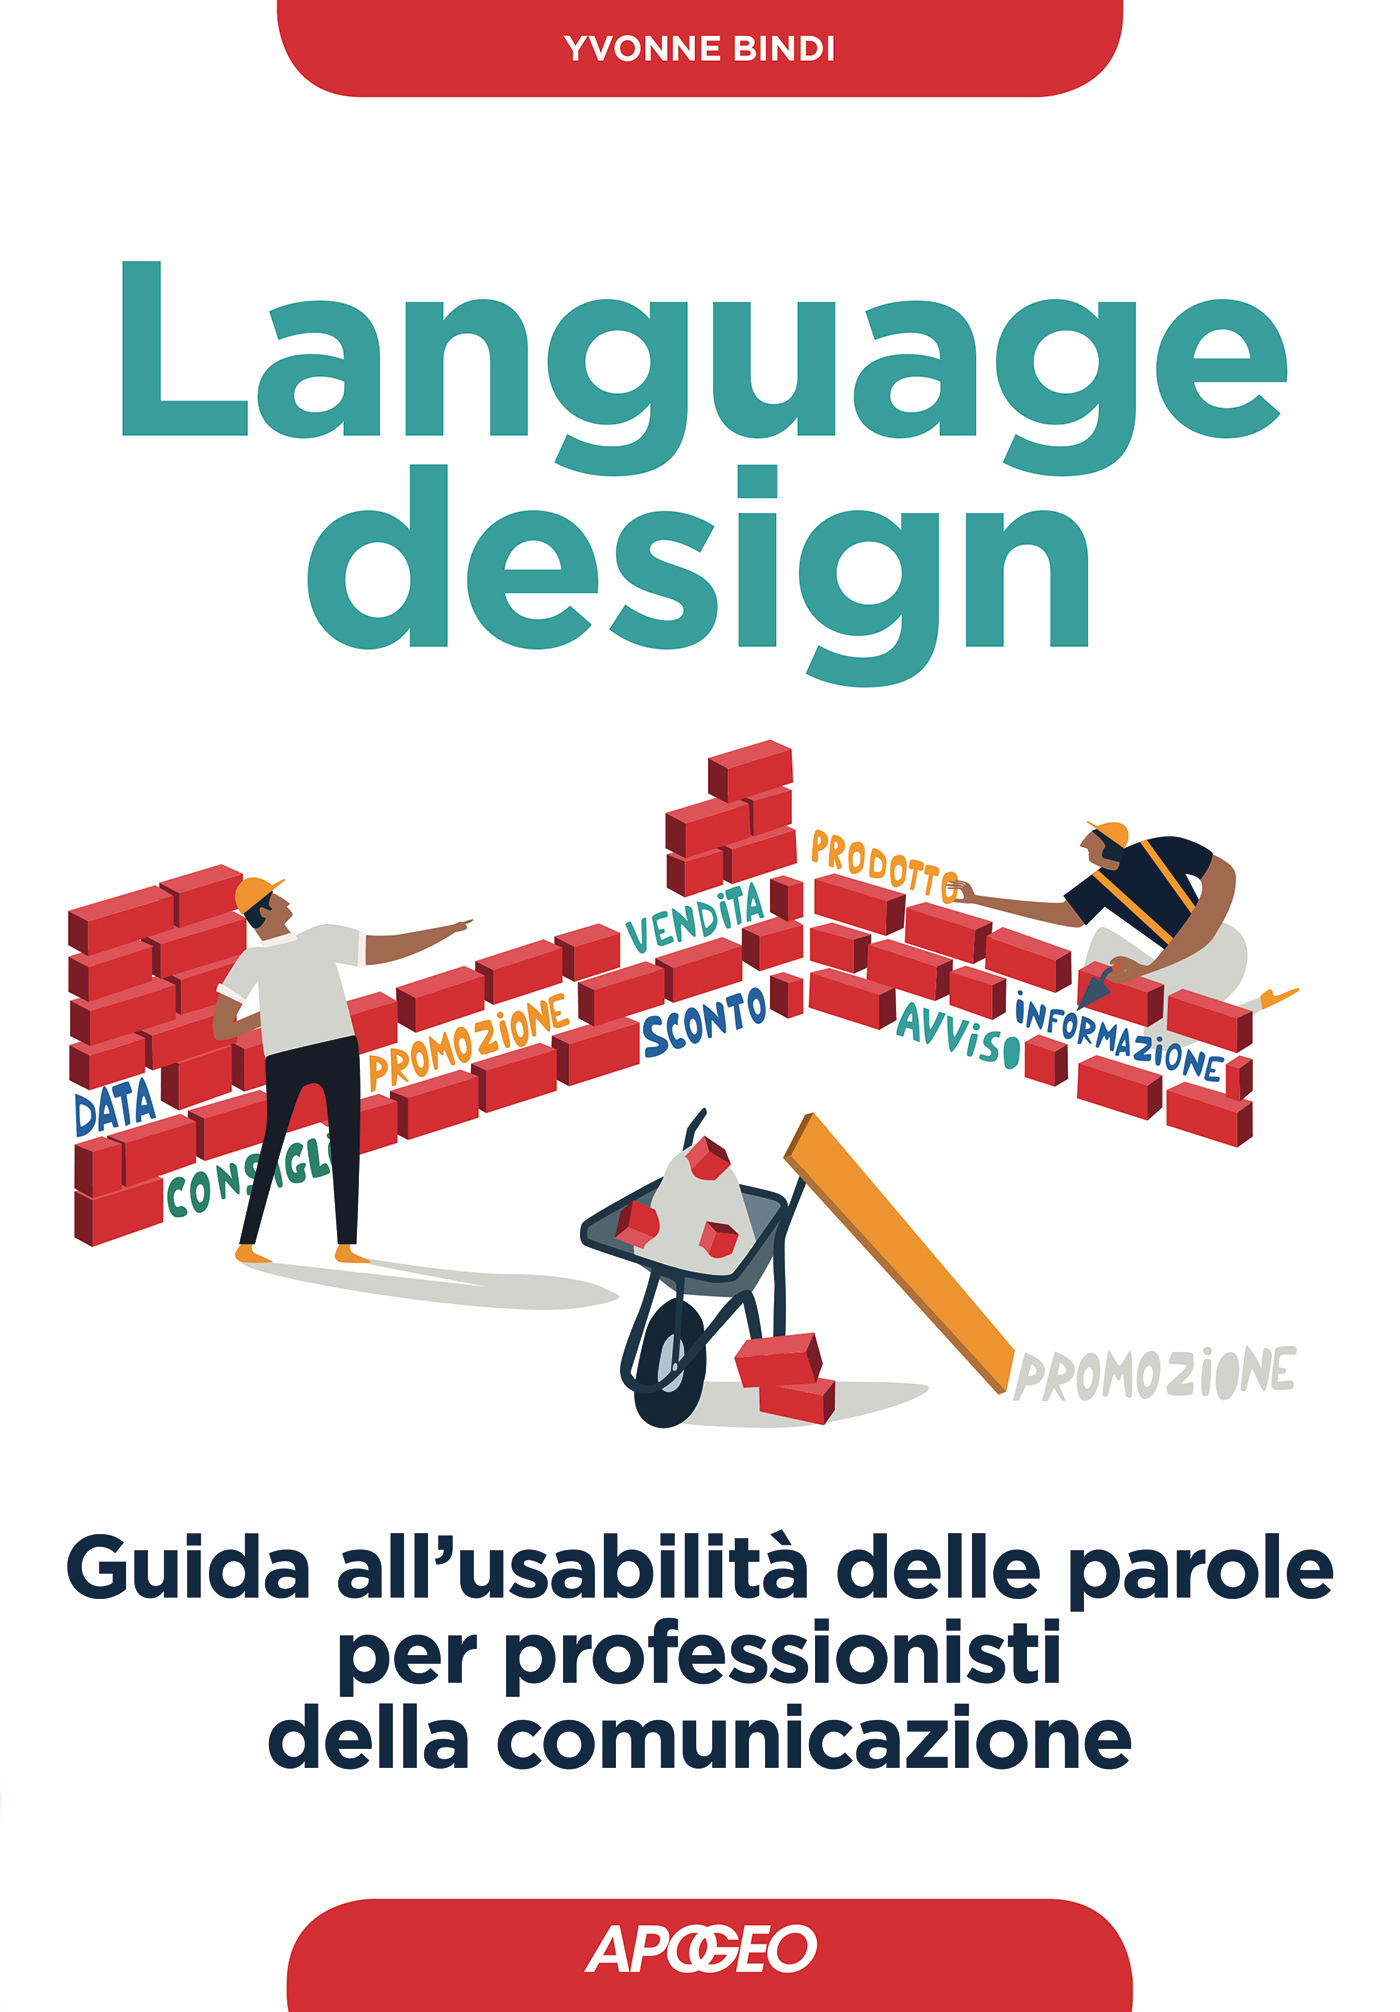 Language design, di Yvonne Bindi